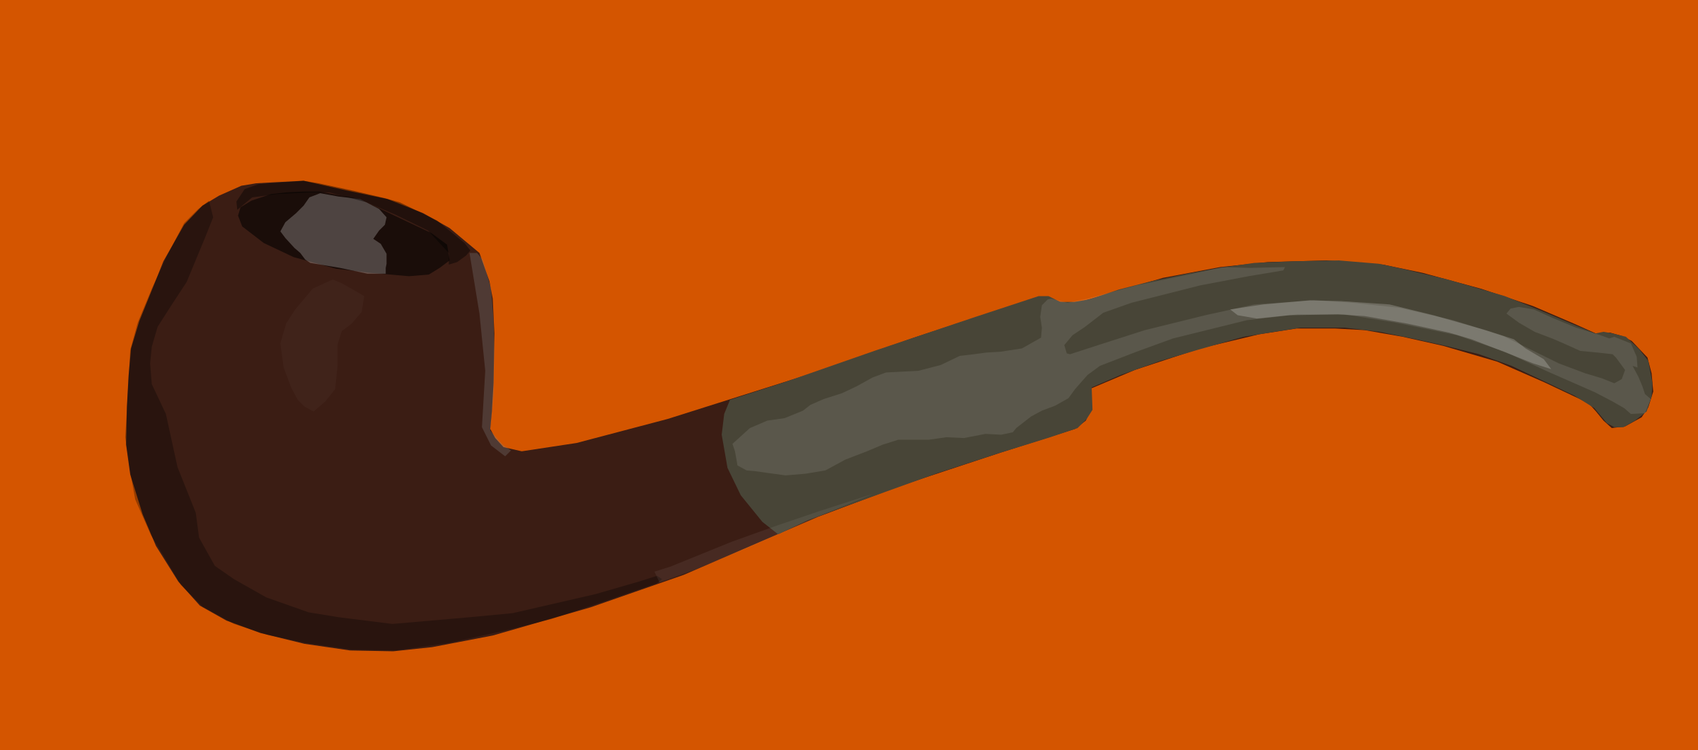 Tobacco Pipe,Tail,Computer Wallpaper